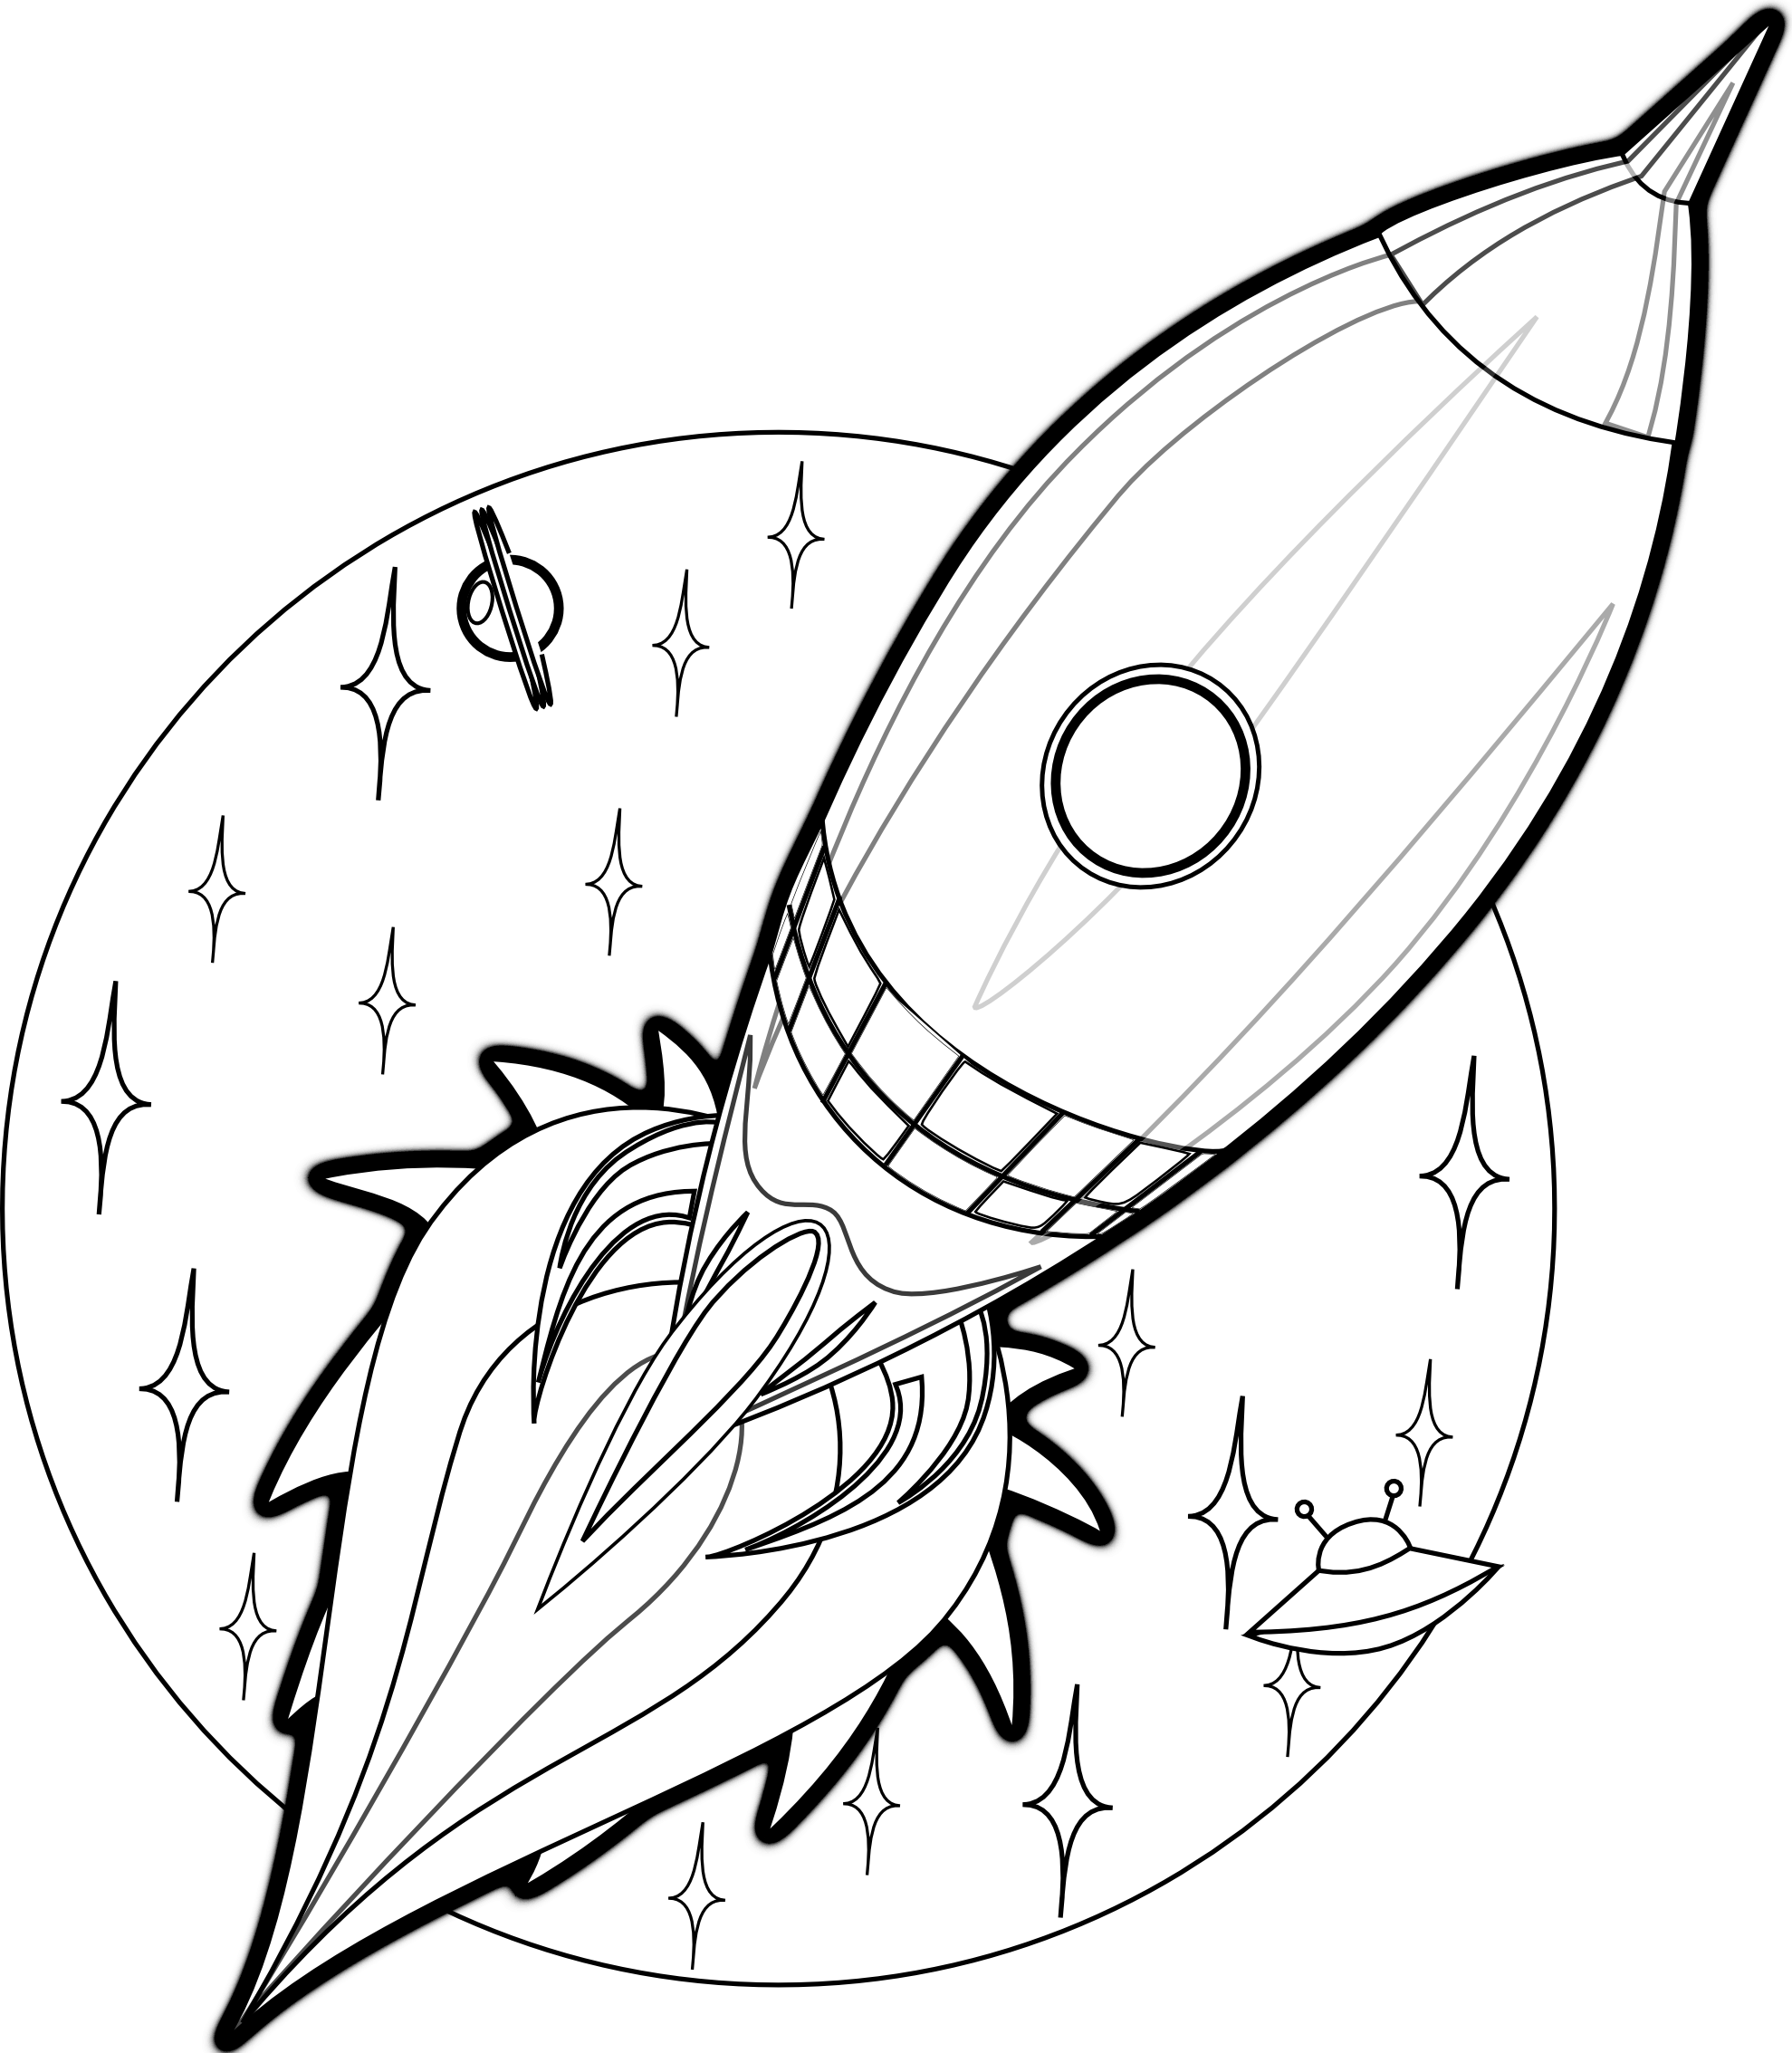 free printable rocket ship coloring pages for kids - Rocket Ship Coloring Page